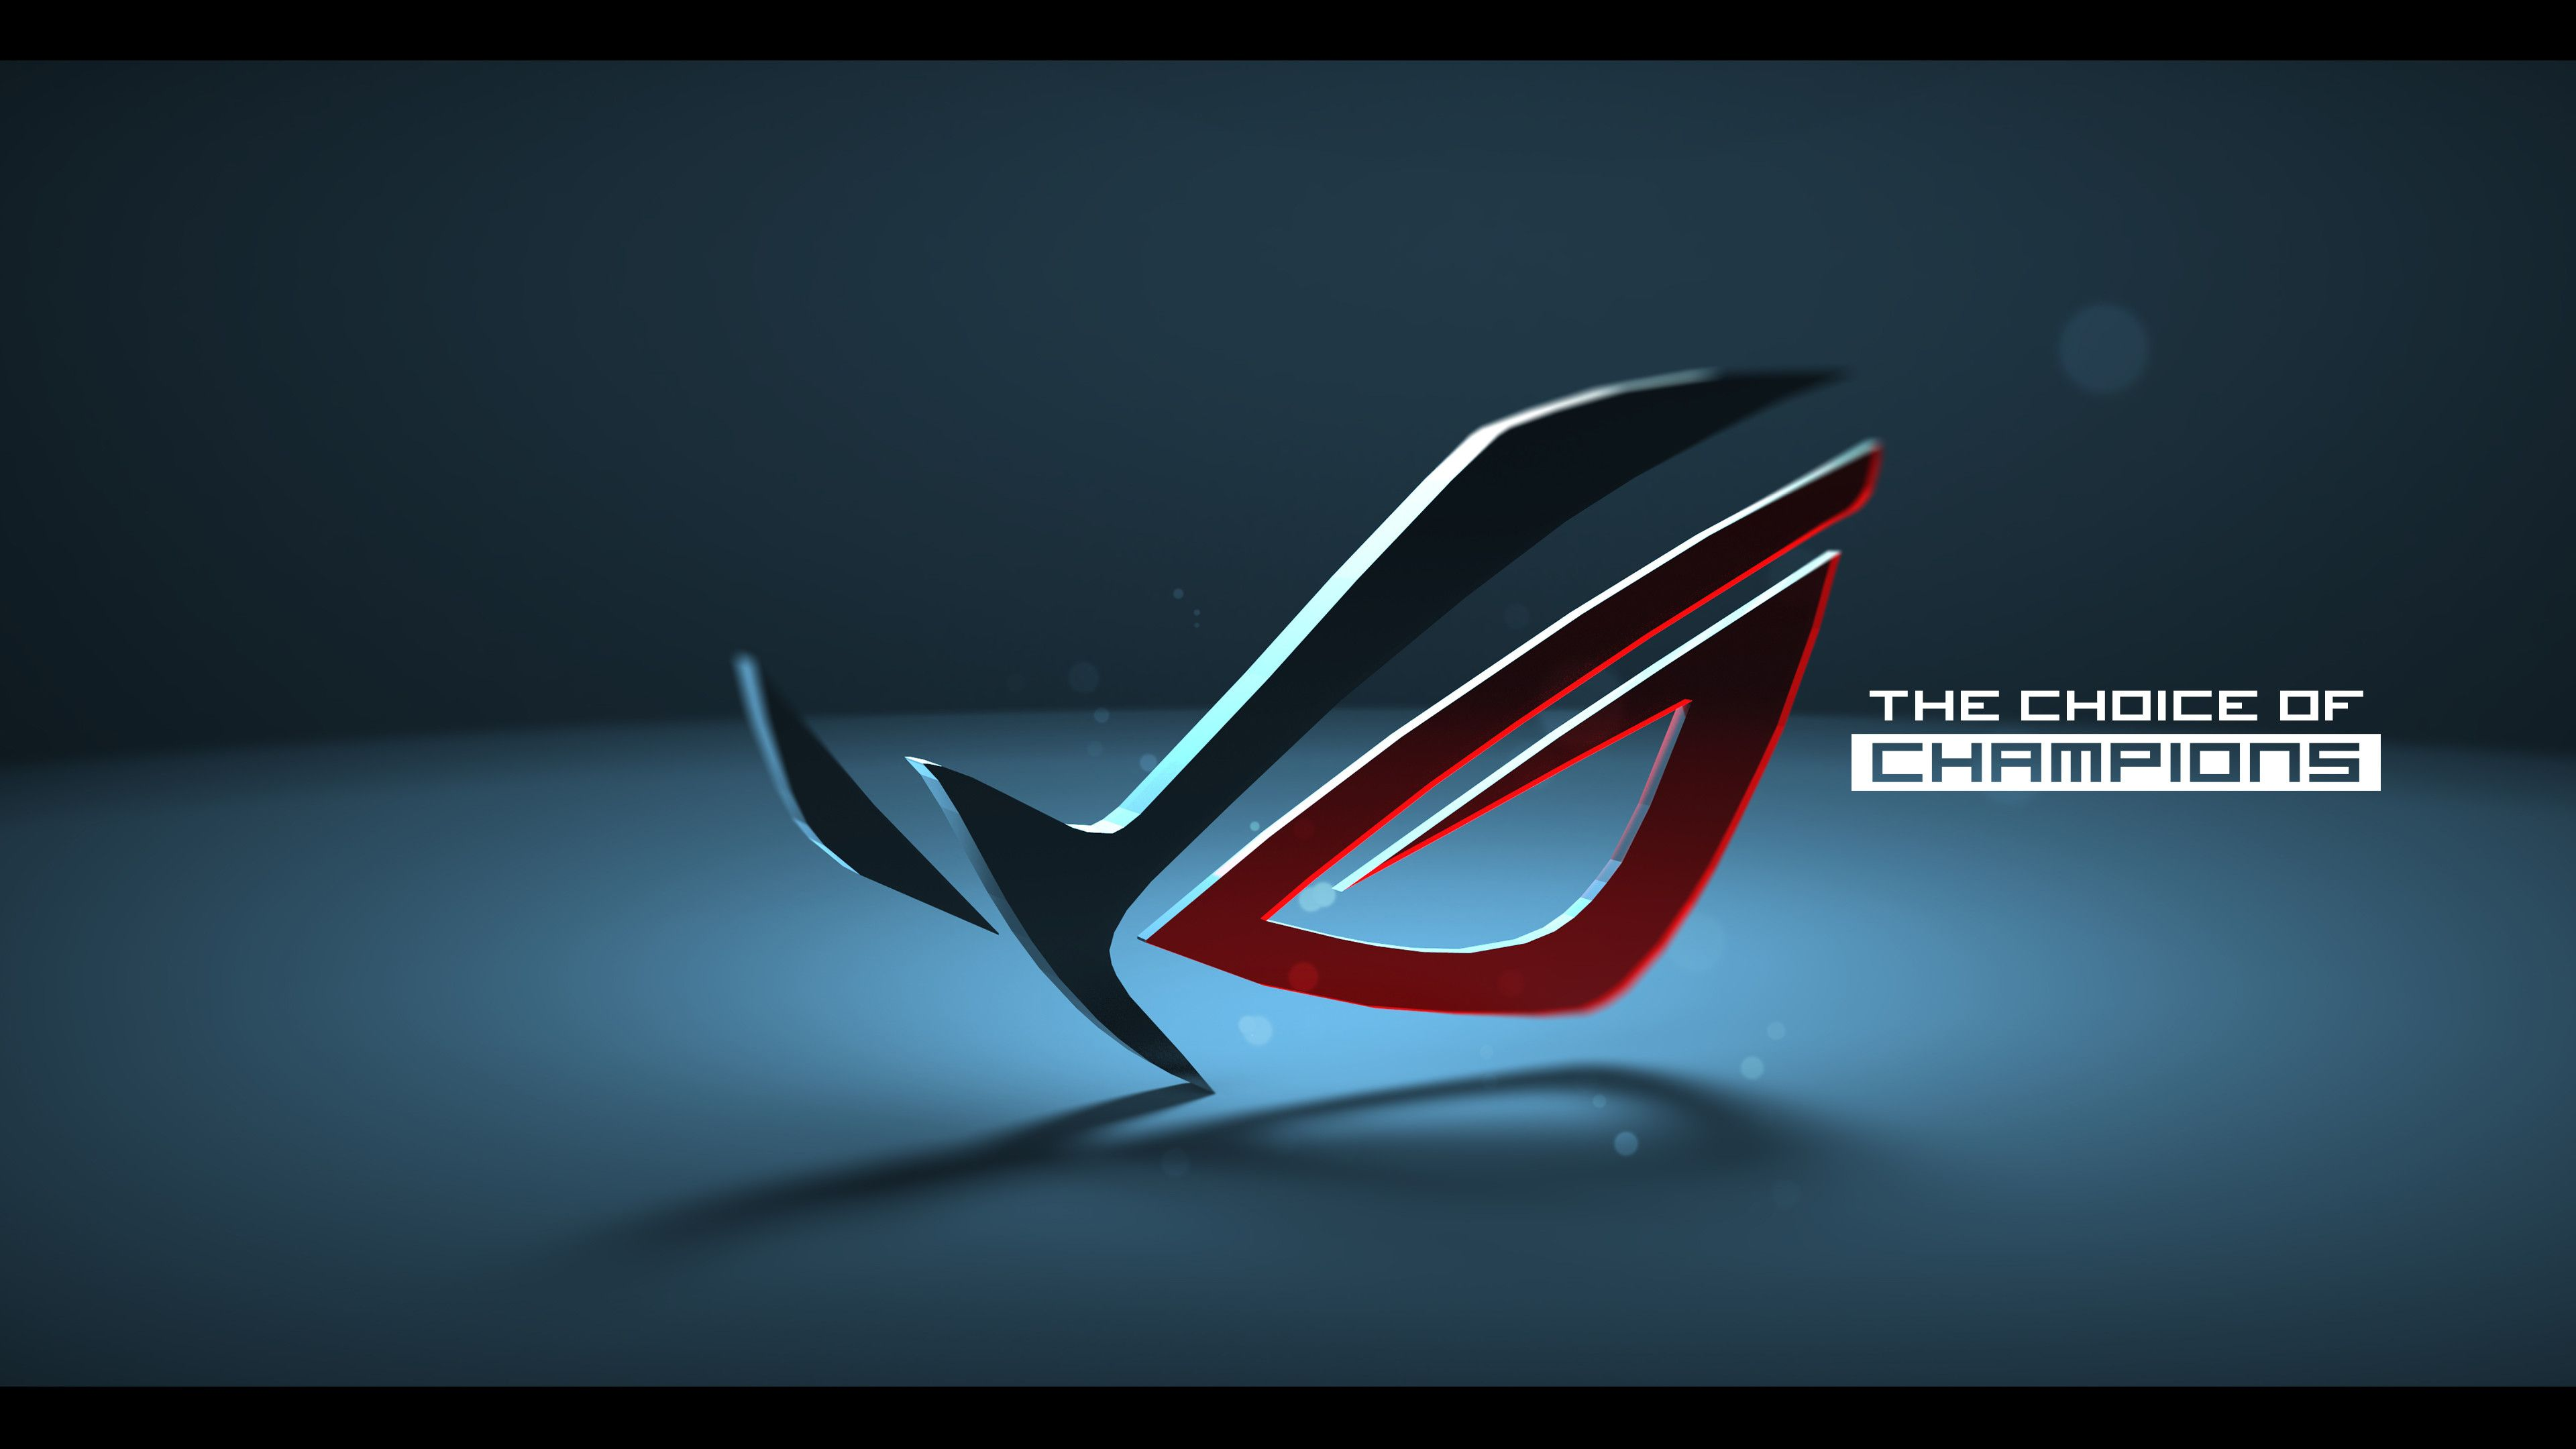 3840x2160 3d logo asus original 4k wallpaper ultra hd